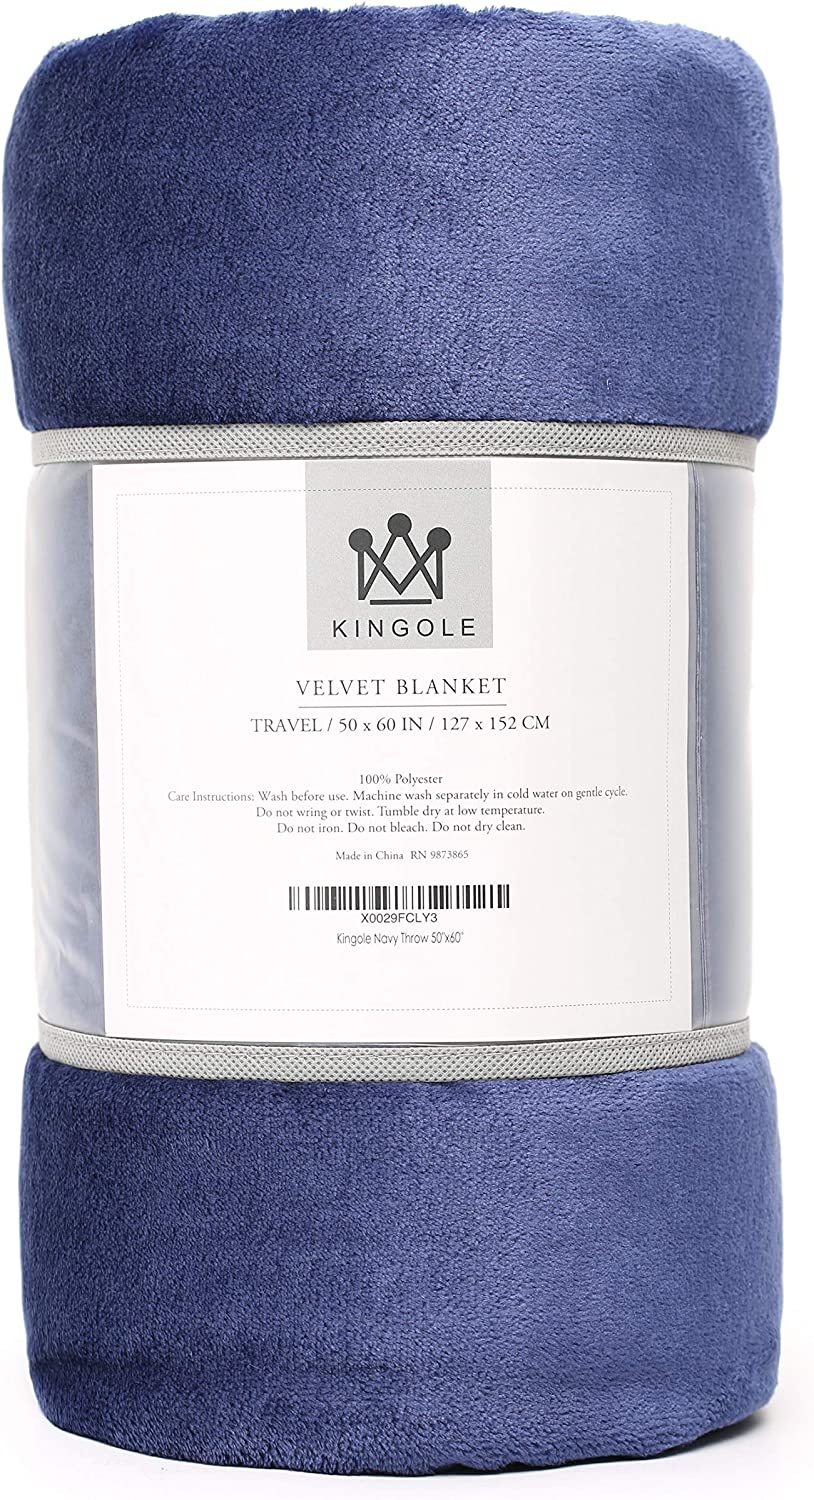 Kingole Flannel Fleece Microfiber Throw Blanket, Luxury Navy Travel/Throw Size Lightweight Cozy Couch Bed Super Soft and Warm Plush Solid Color 350GSM (50 x 60 inches)